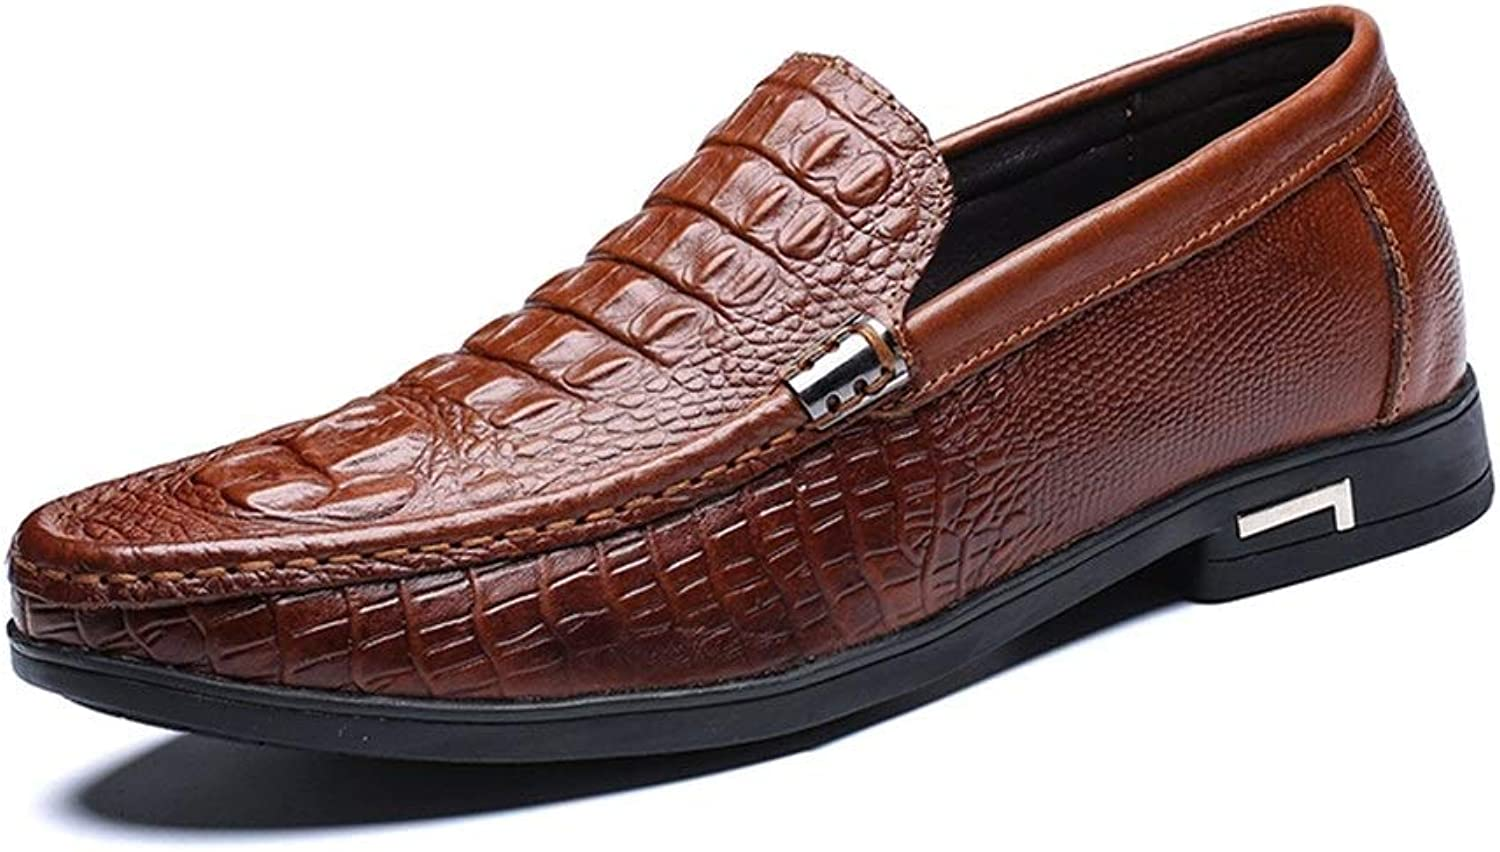 Business shoes for Men Genuine Leather Comfortable Breathable Dress Casual Embossed Loafers Anti-Slip Flat Slip-on Round Toe (color   Brown, Size   6.5 D(M) US)